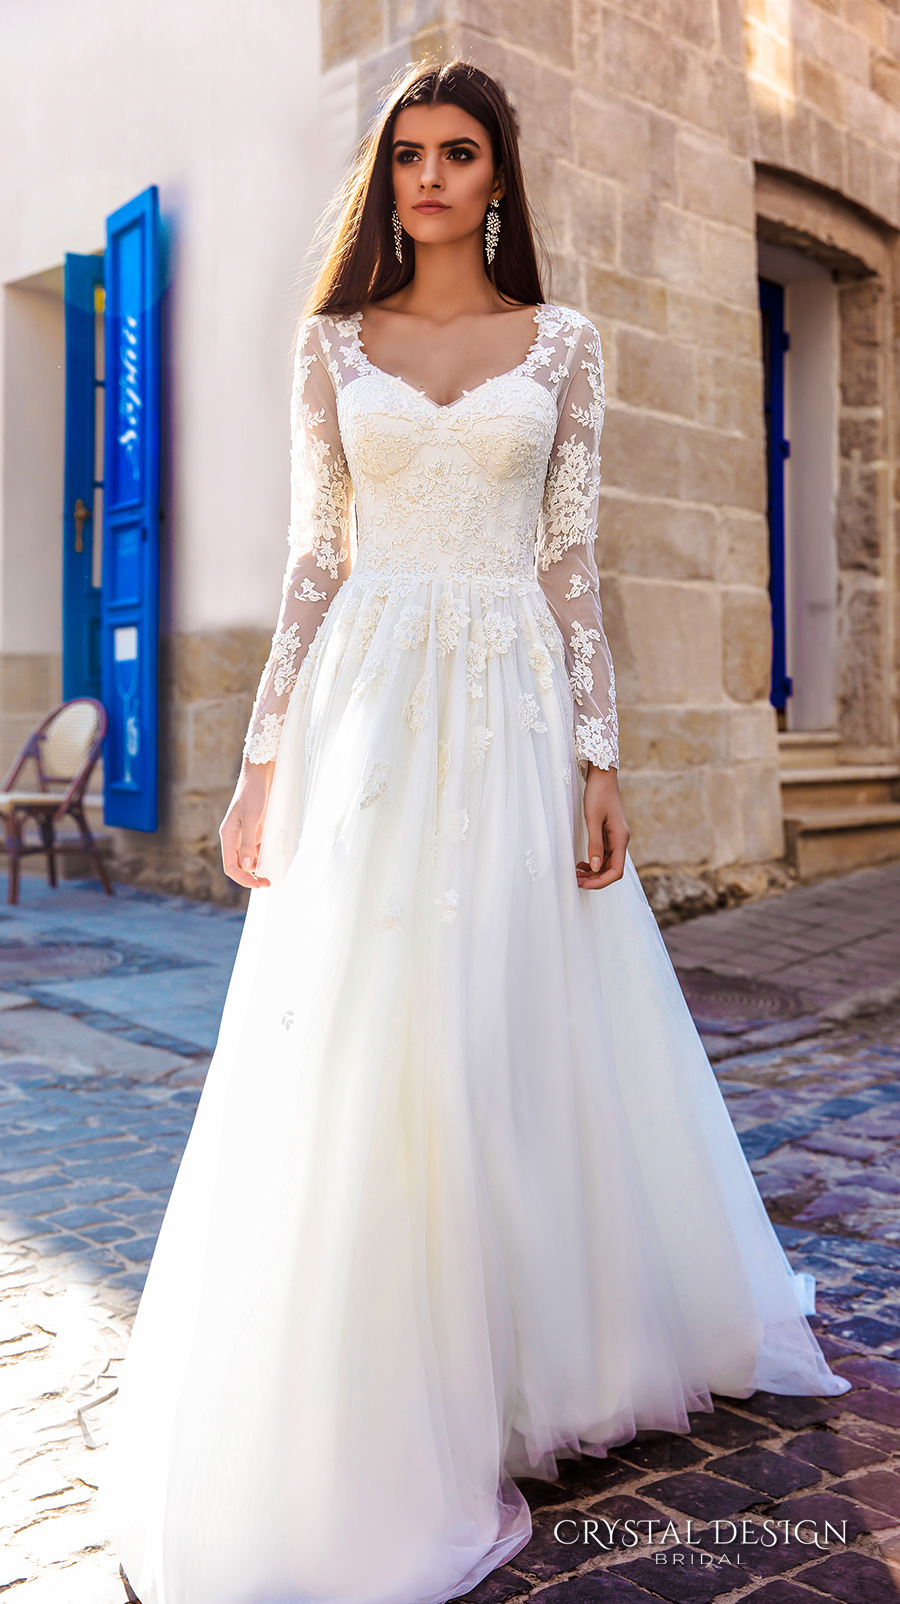 Crystal design 2016 wedding dresses wedding inspirasi for Long wedding dresses with sleeves